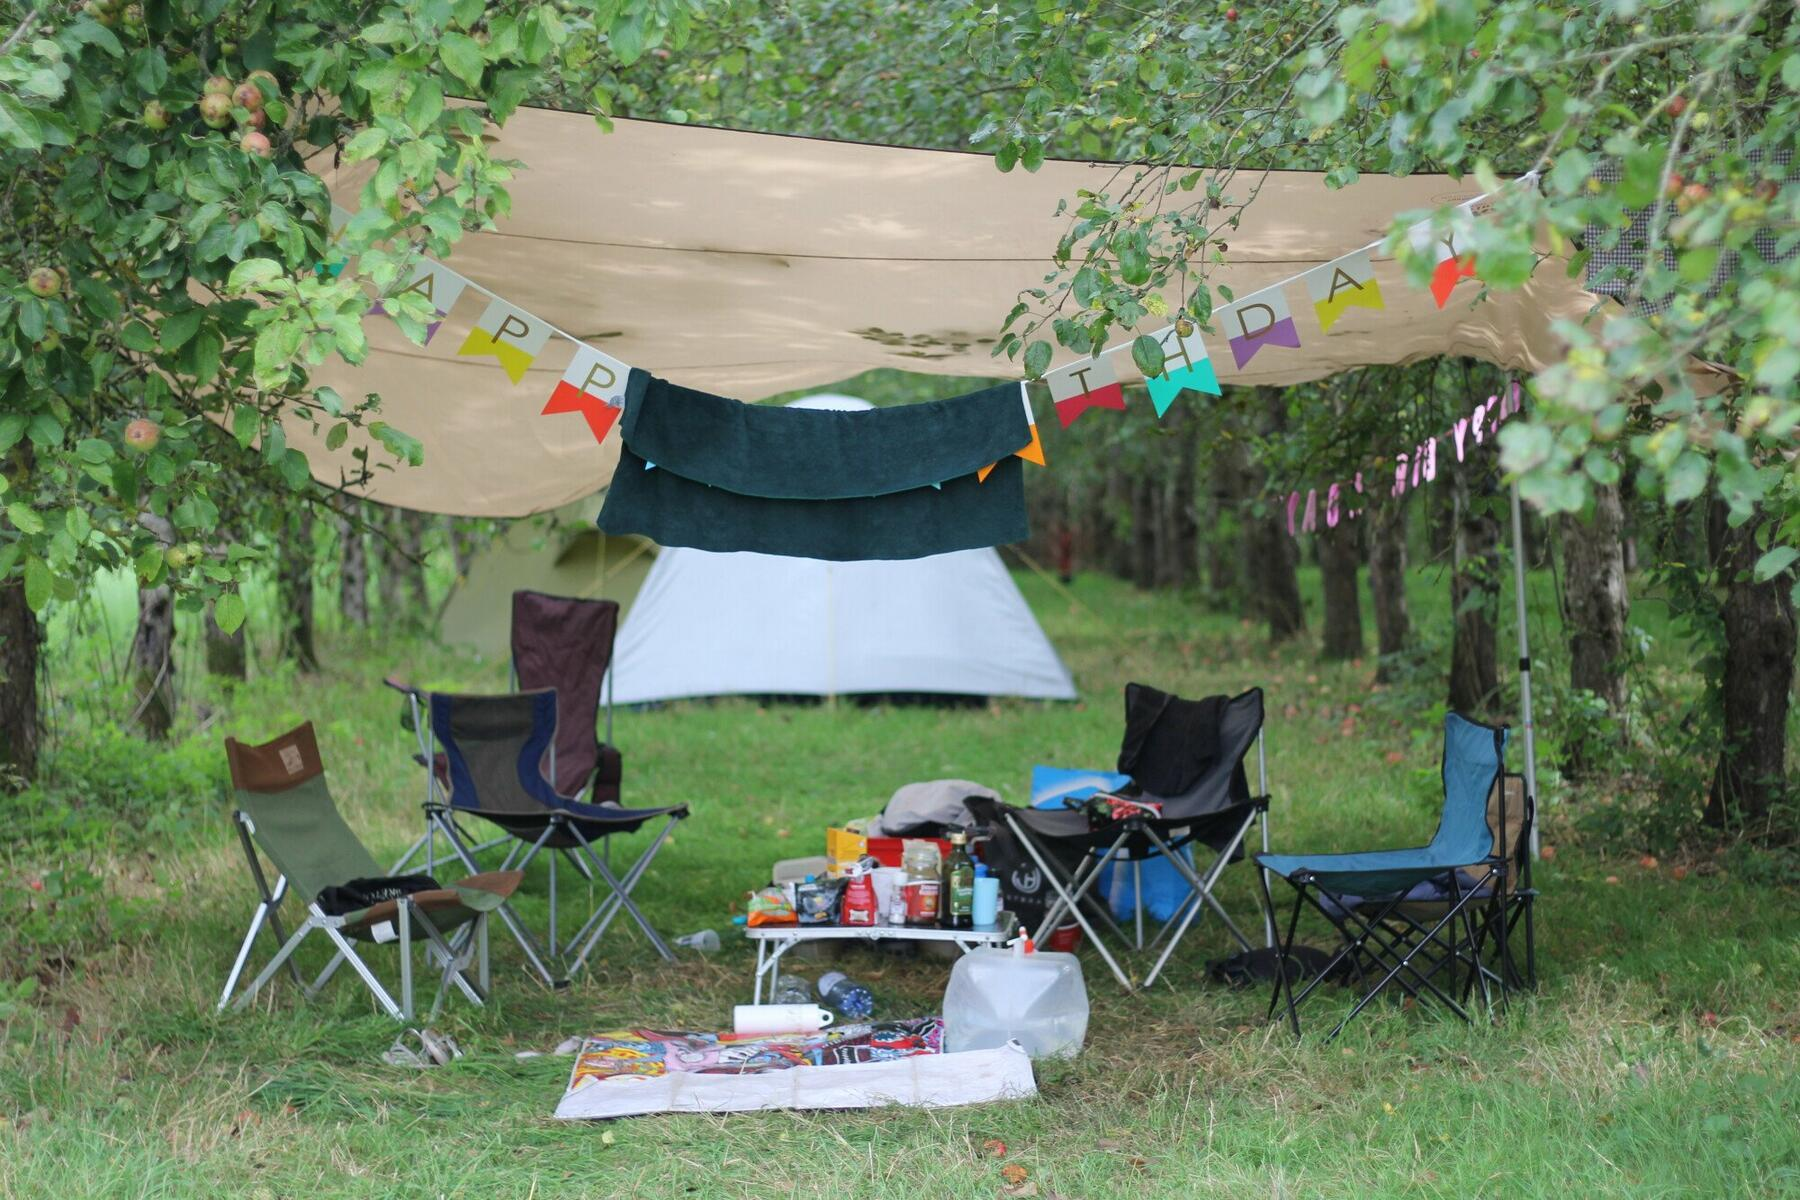 Make the orchards your own for a weekend!